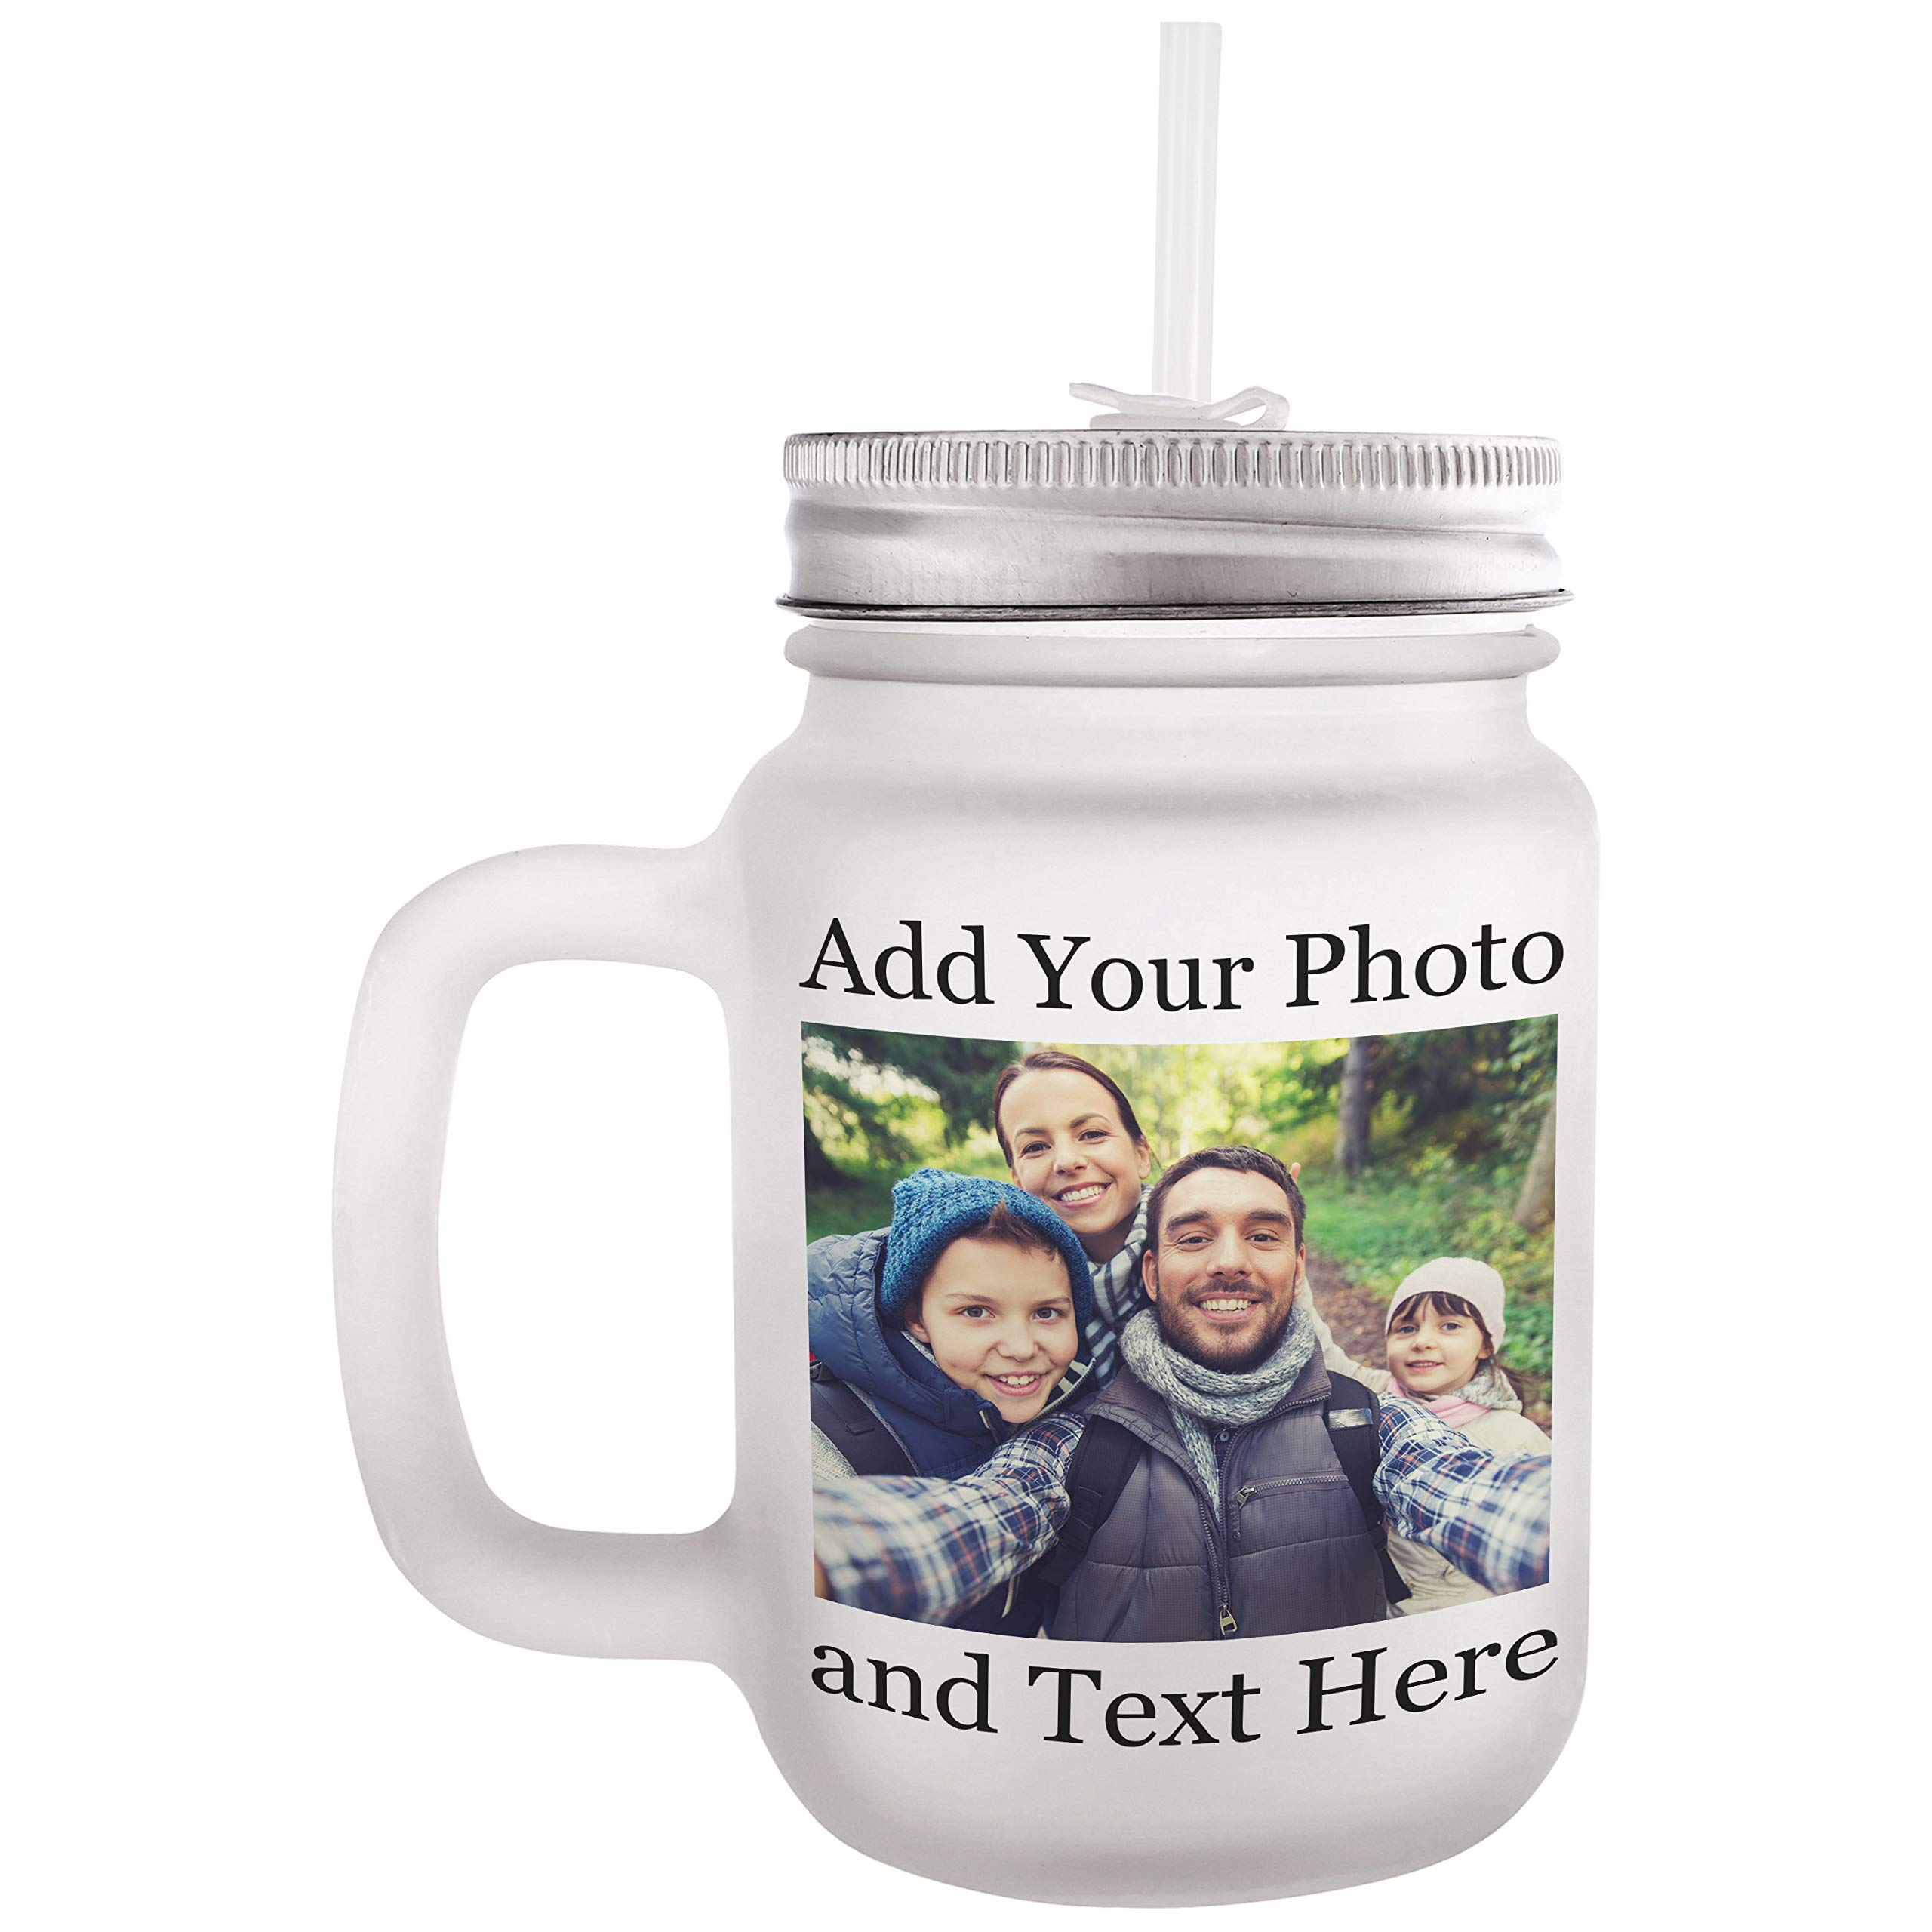 Personalized Custom Mason Jar - Add Your Photo, Text, Logo, Monogram - 8 Different Fonts & Colors - 12oz Mason Jar with Lid and Straw